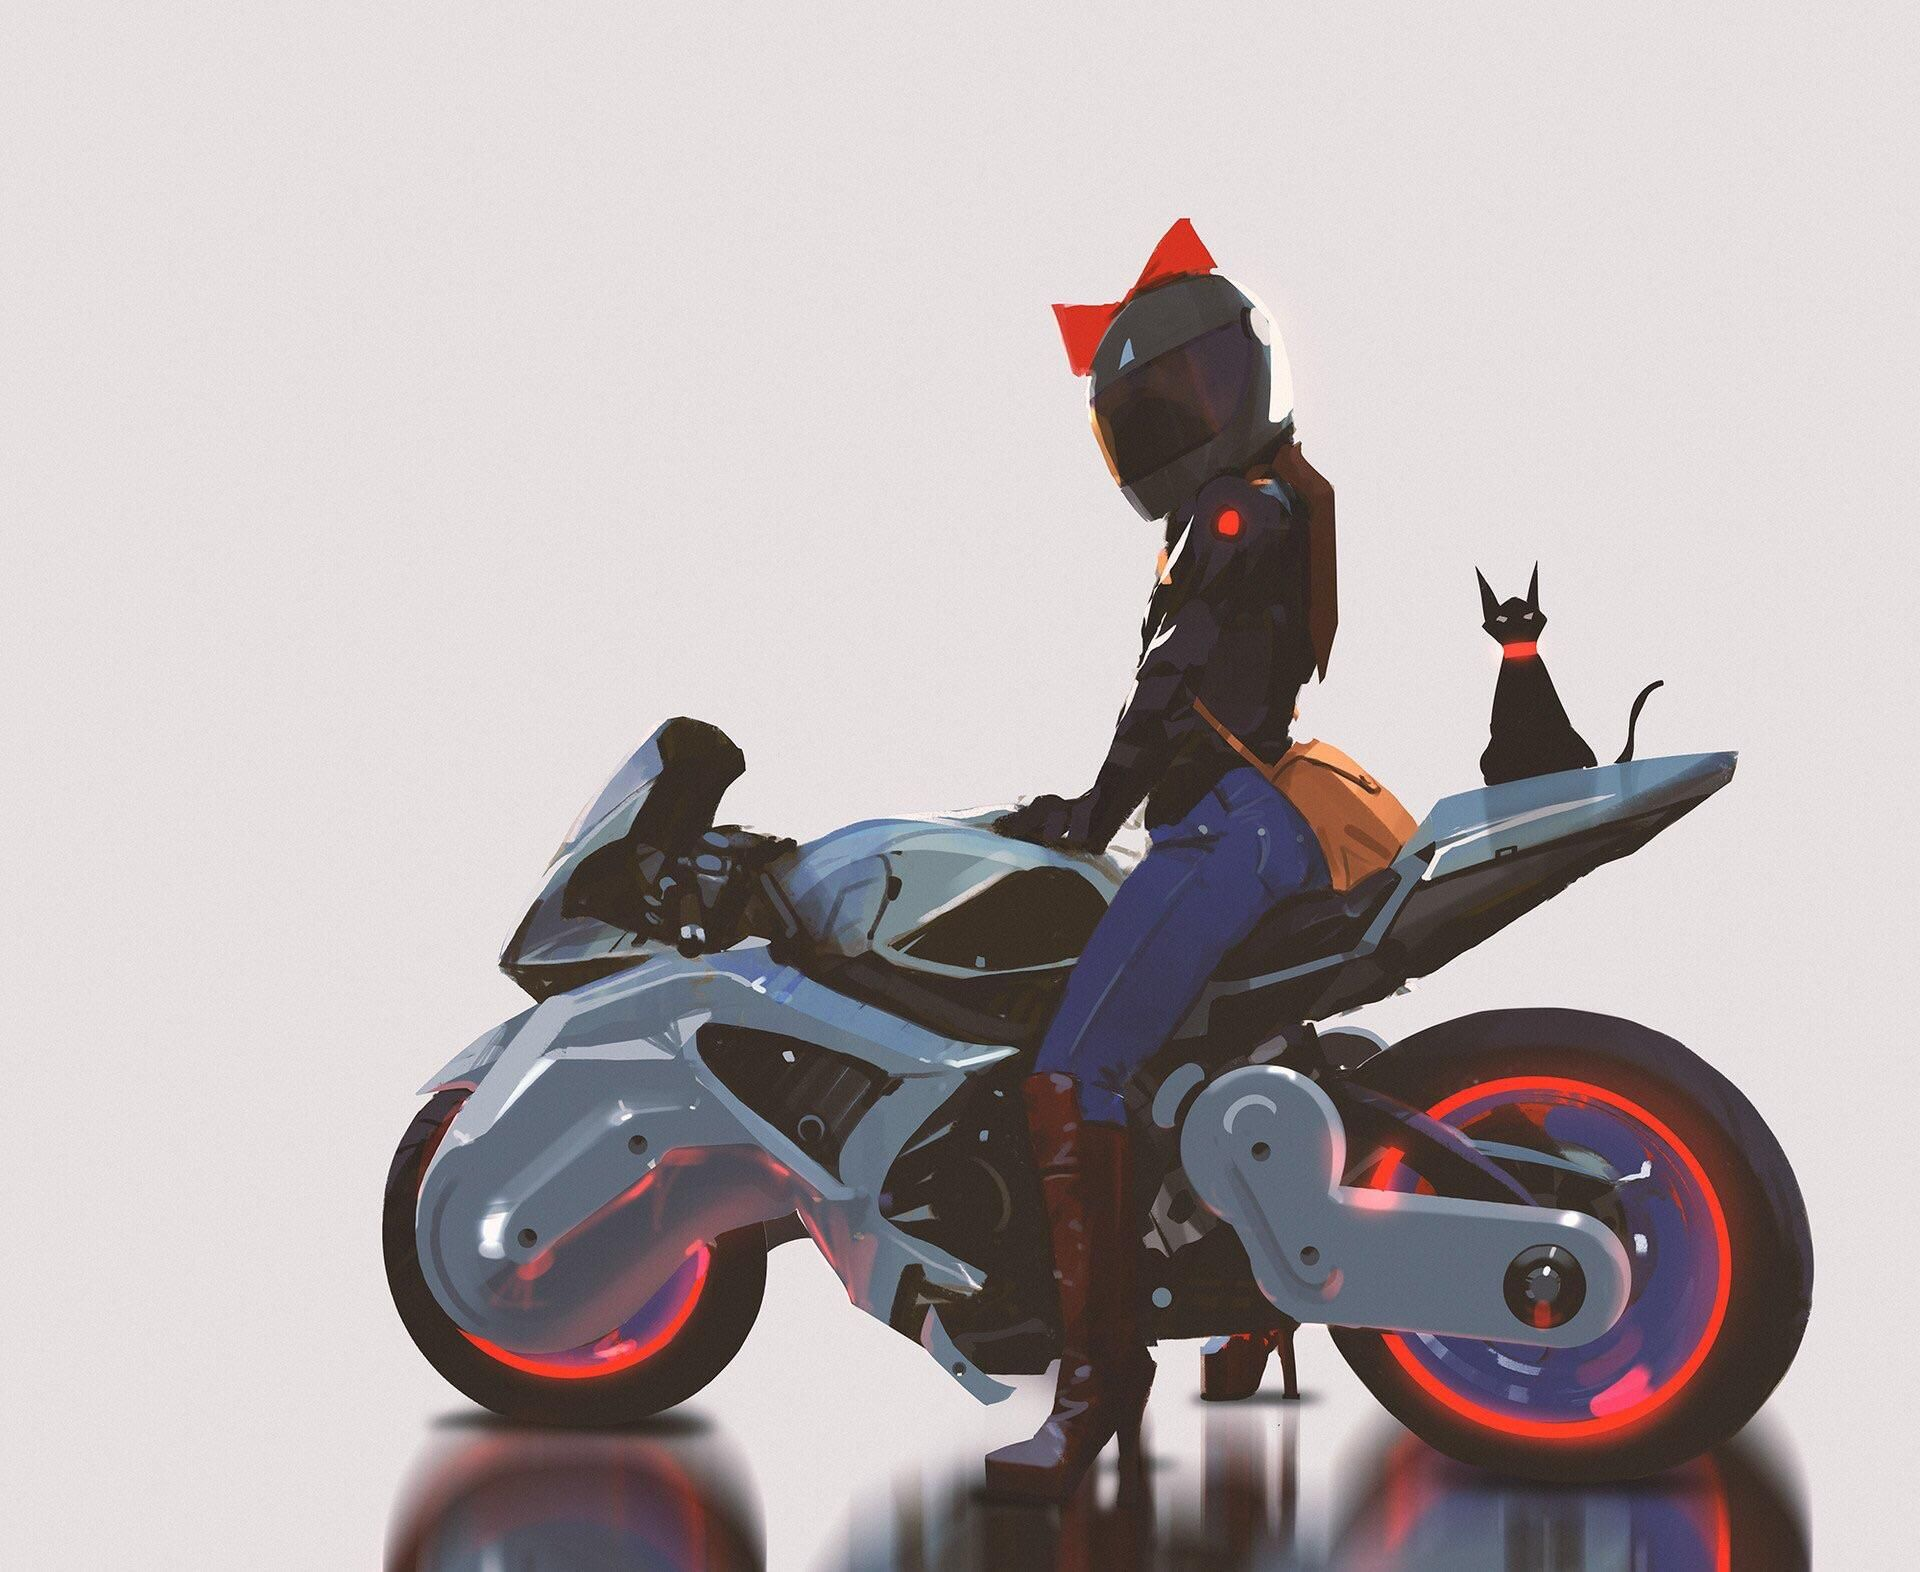 7607 Points And 110 Comments So Far On Reddit Anime Motorcycle